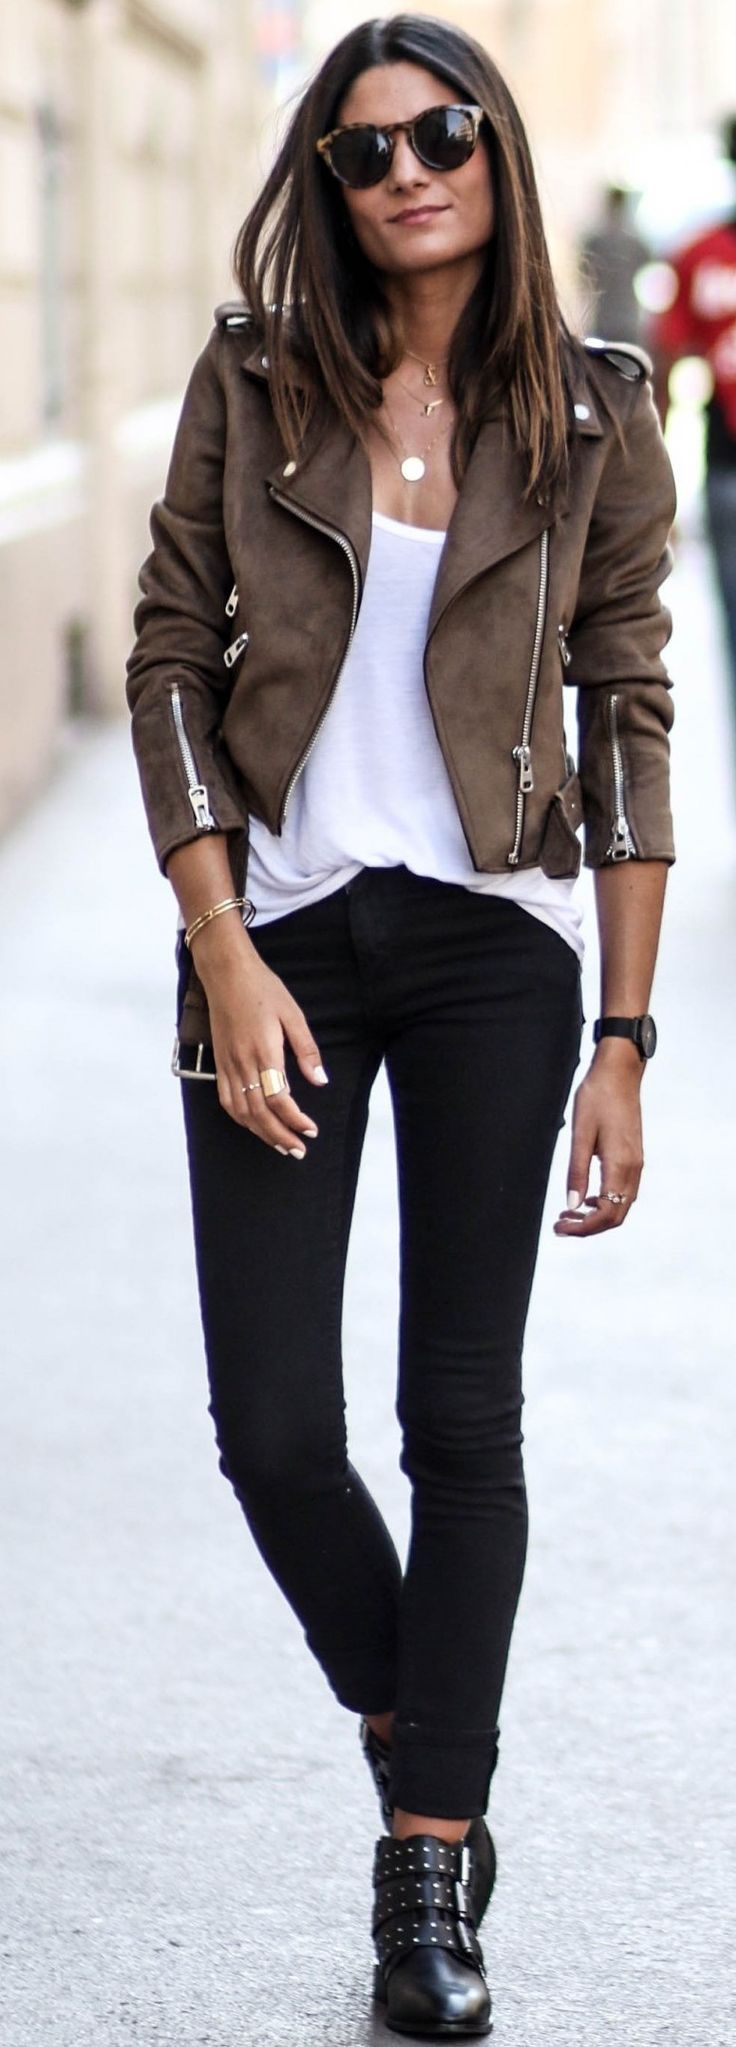 Best 25 Fall Street Styles Ideas On Pinterest Fall Style 2015 Fashion Autumn 2015 And Fall